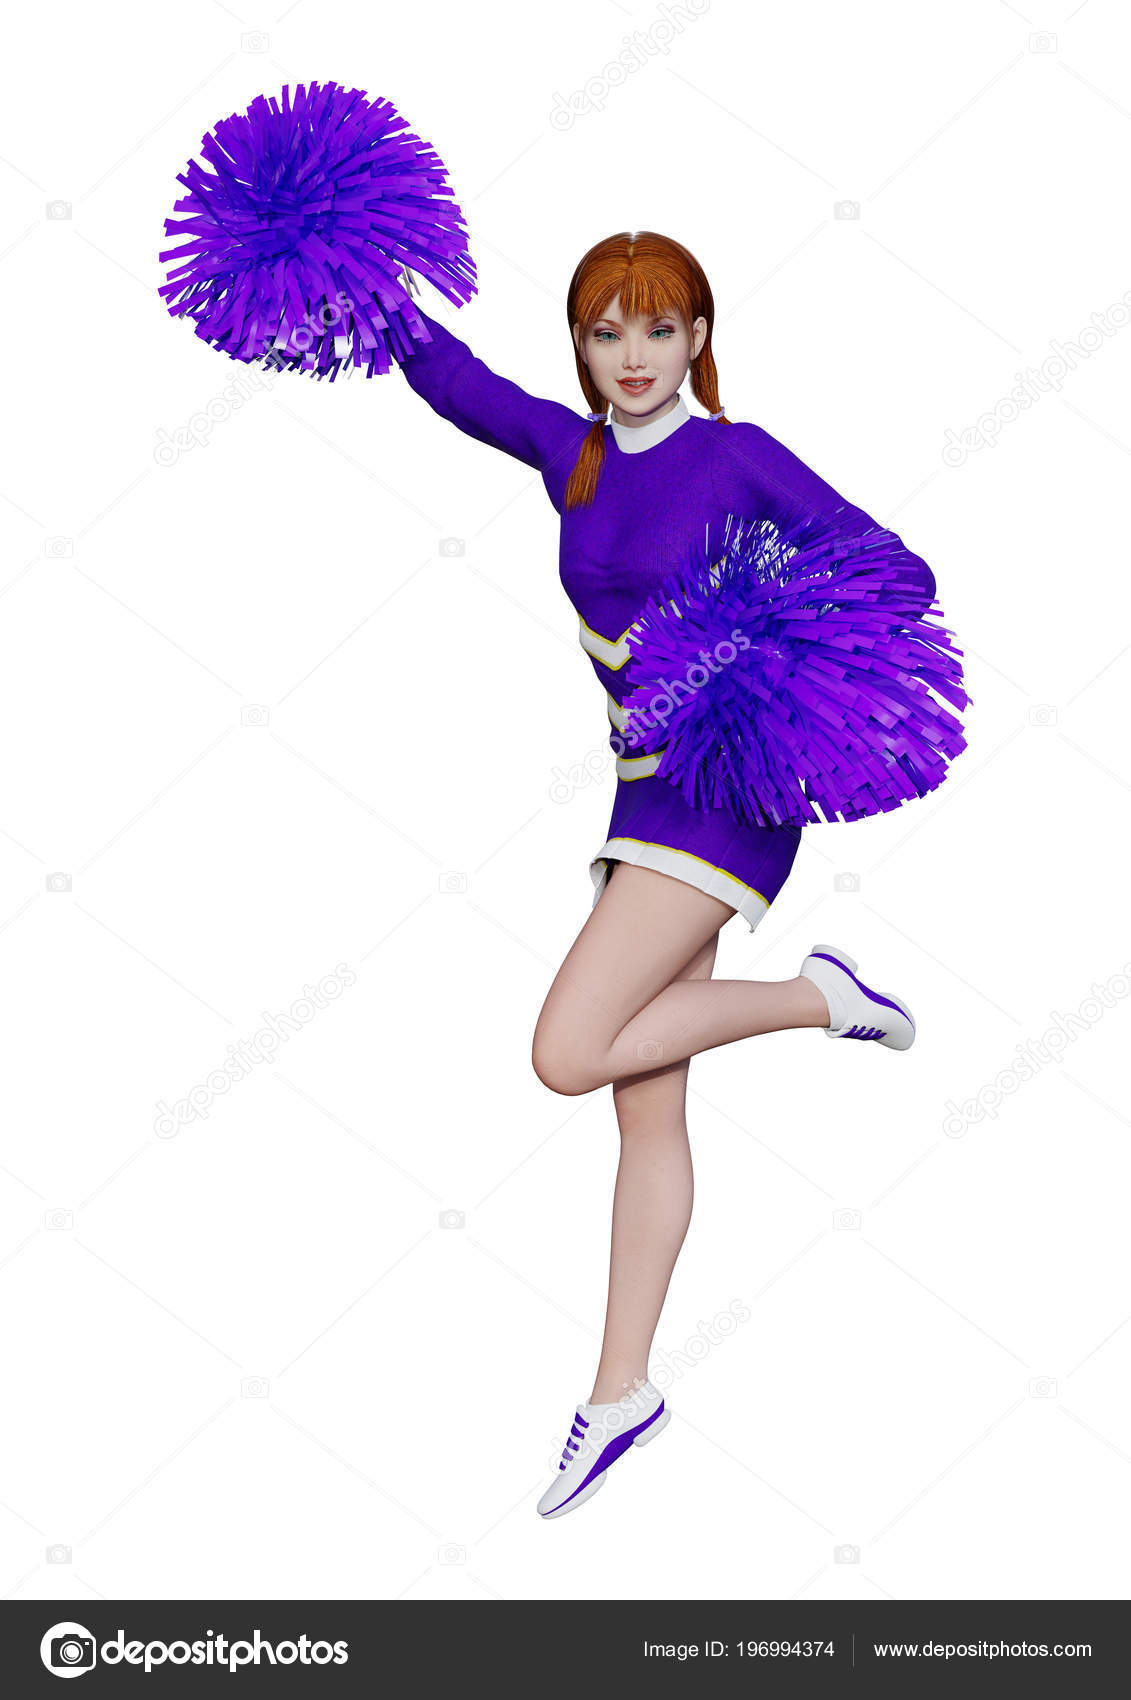 3d Rendering Of A Young Cheerleader With Pompoms Isolated On White Background Photo By